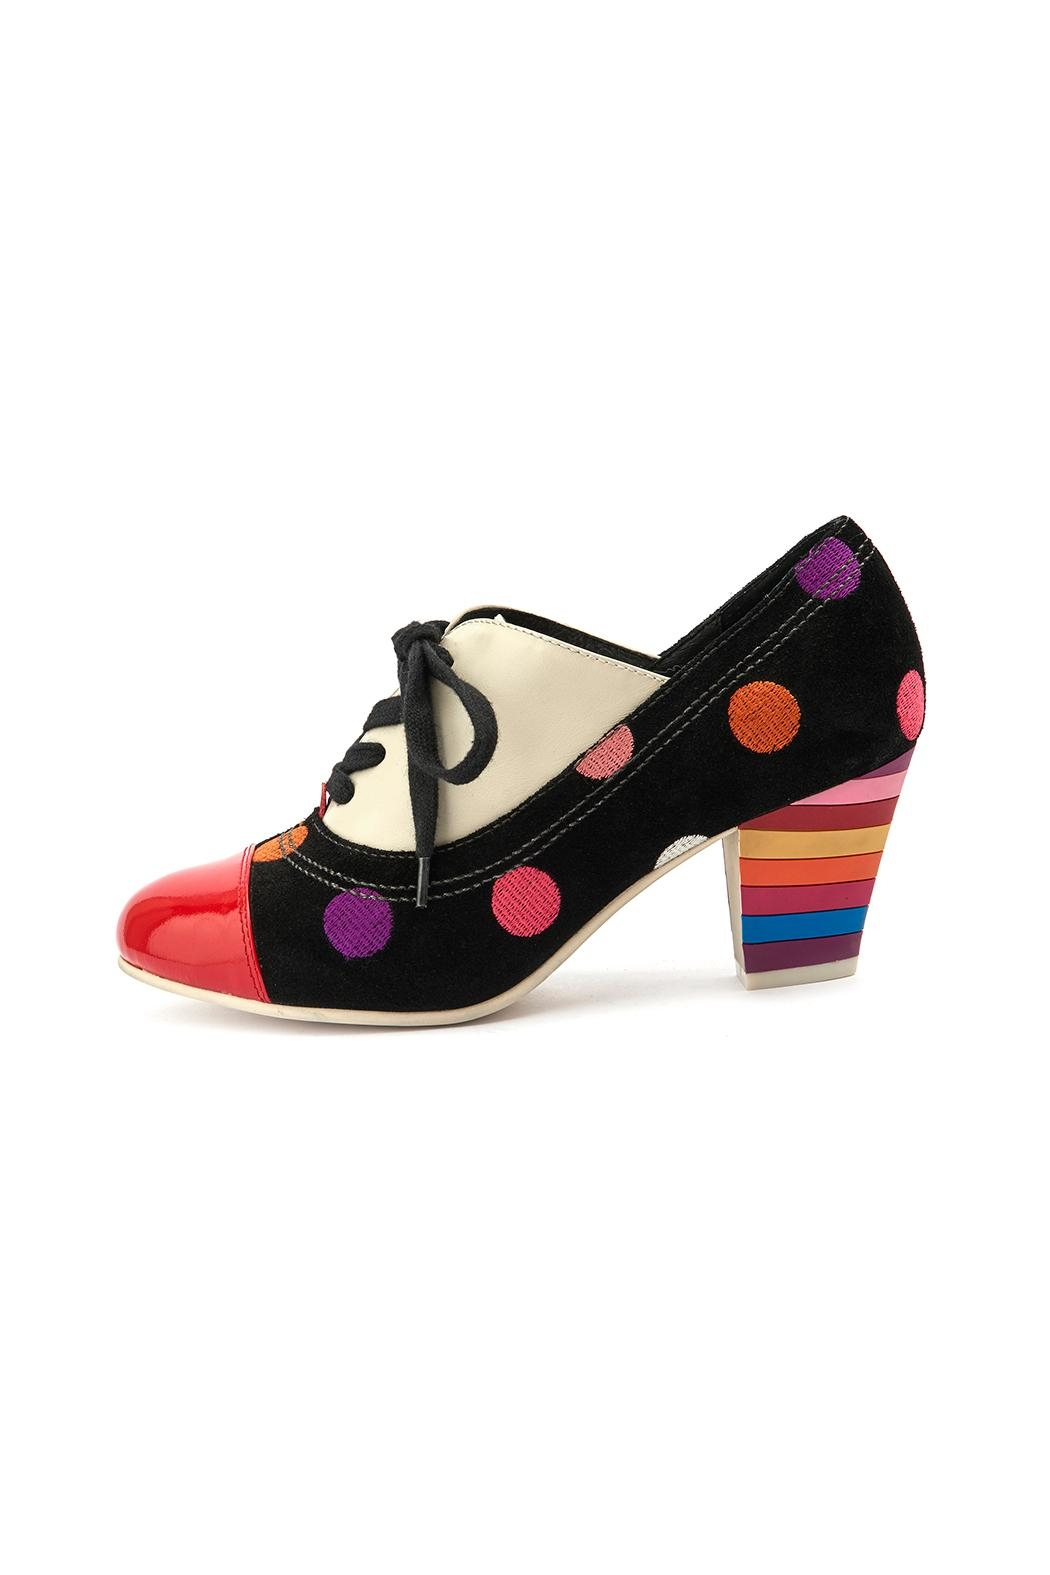 Lola Ramona Elsie Lace Dots Shoes - Front Full Image